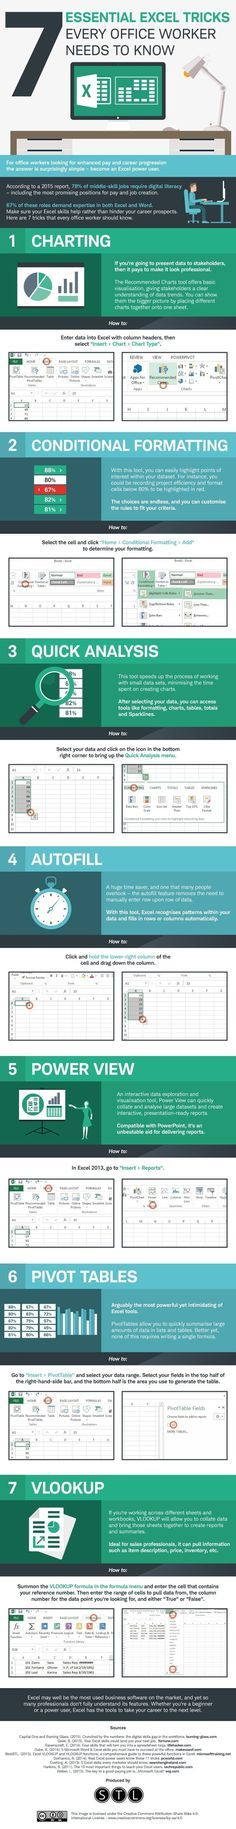 101 best Excel images on Pinterest Microsoft office, Computer tips